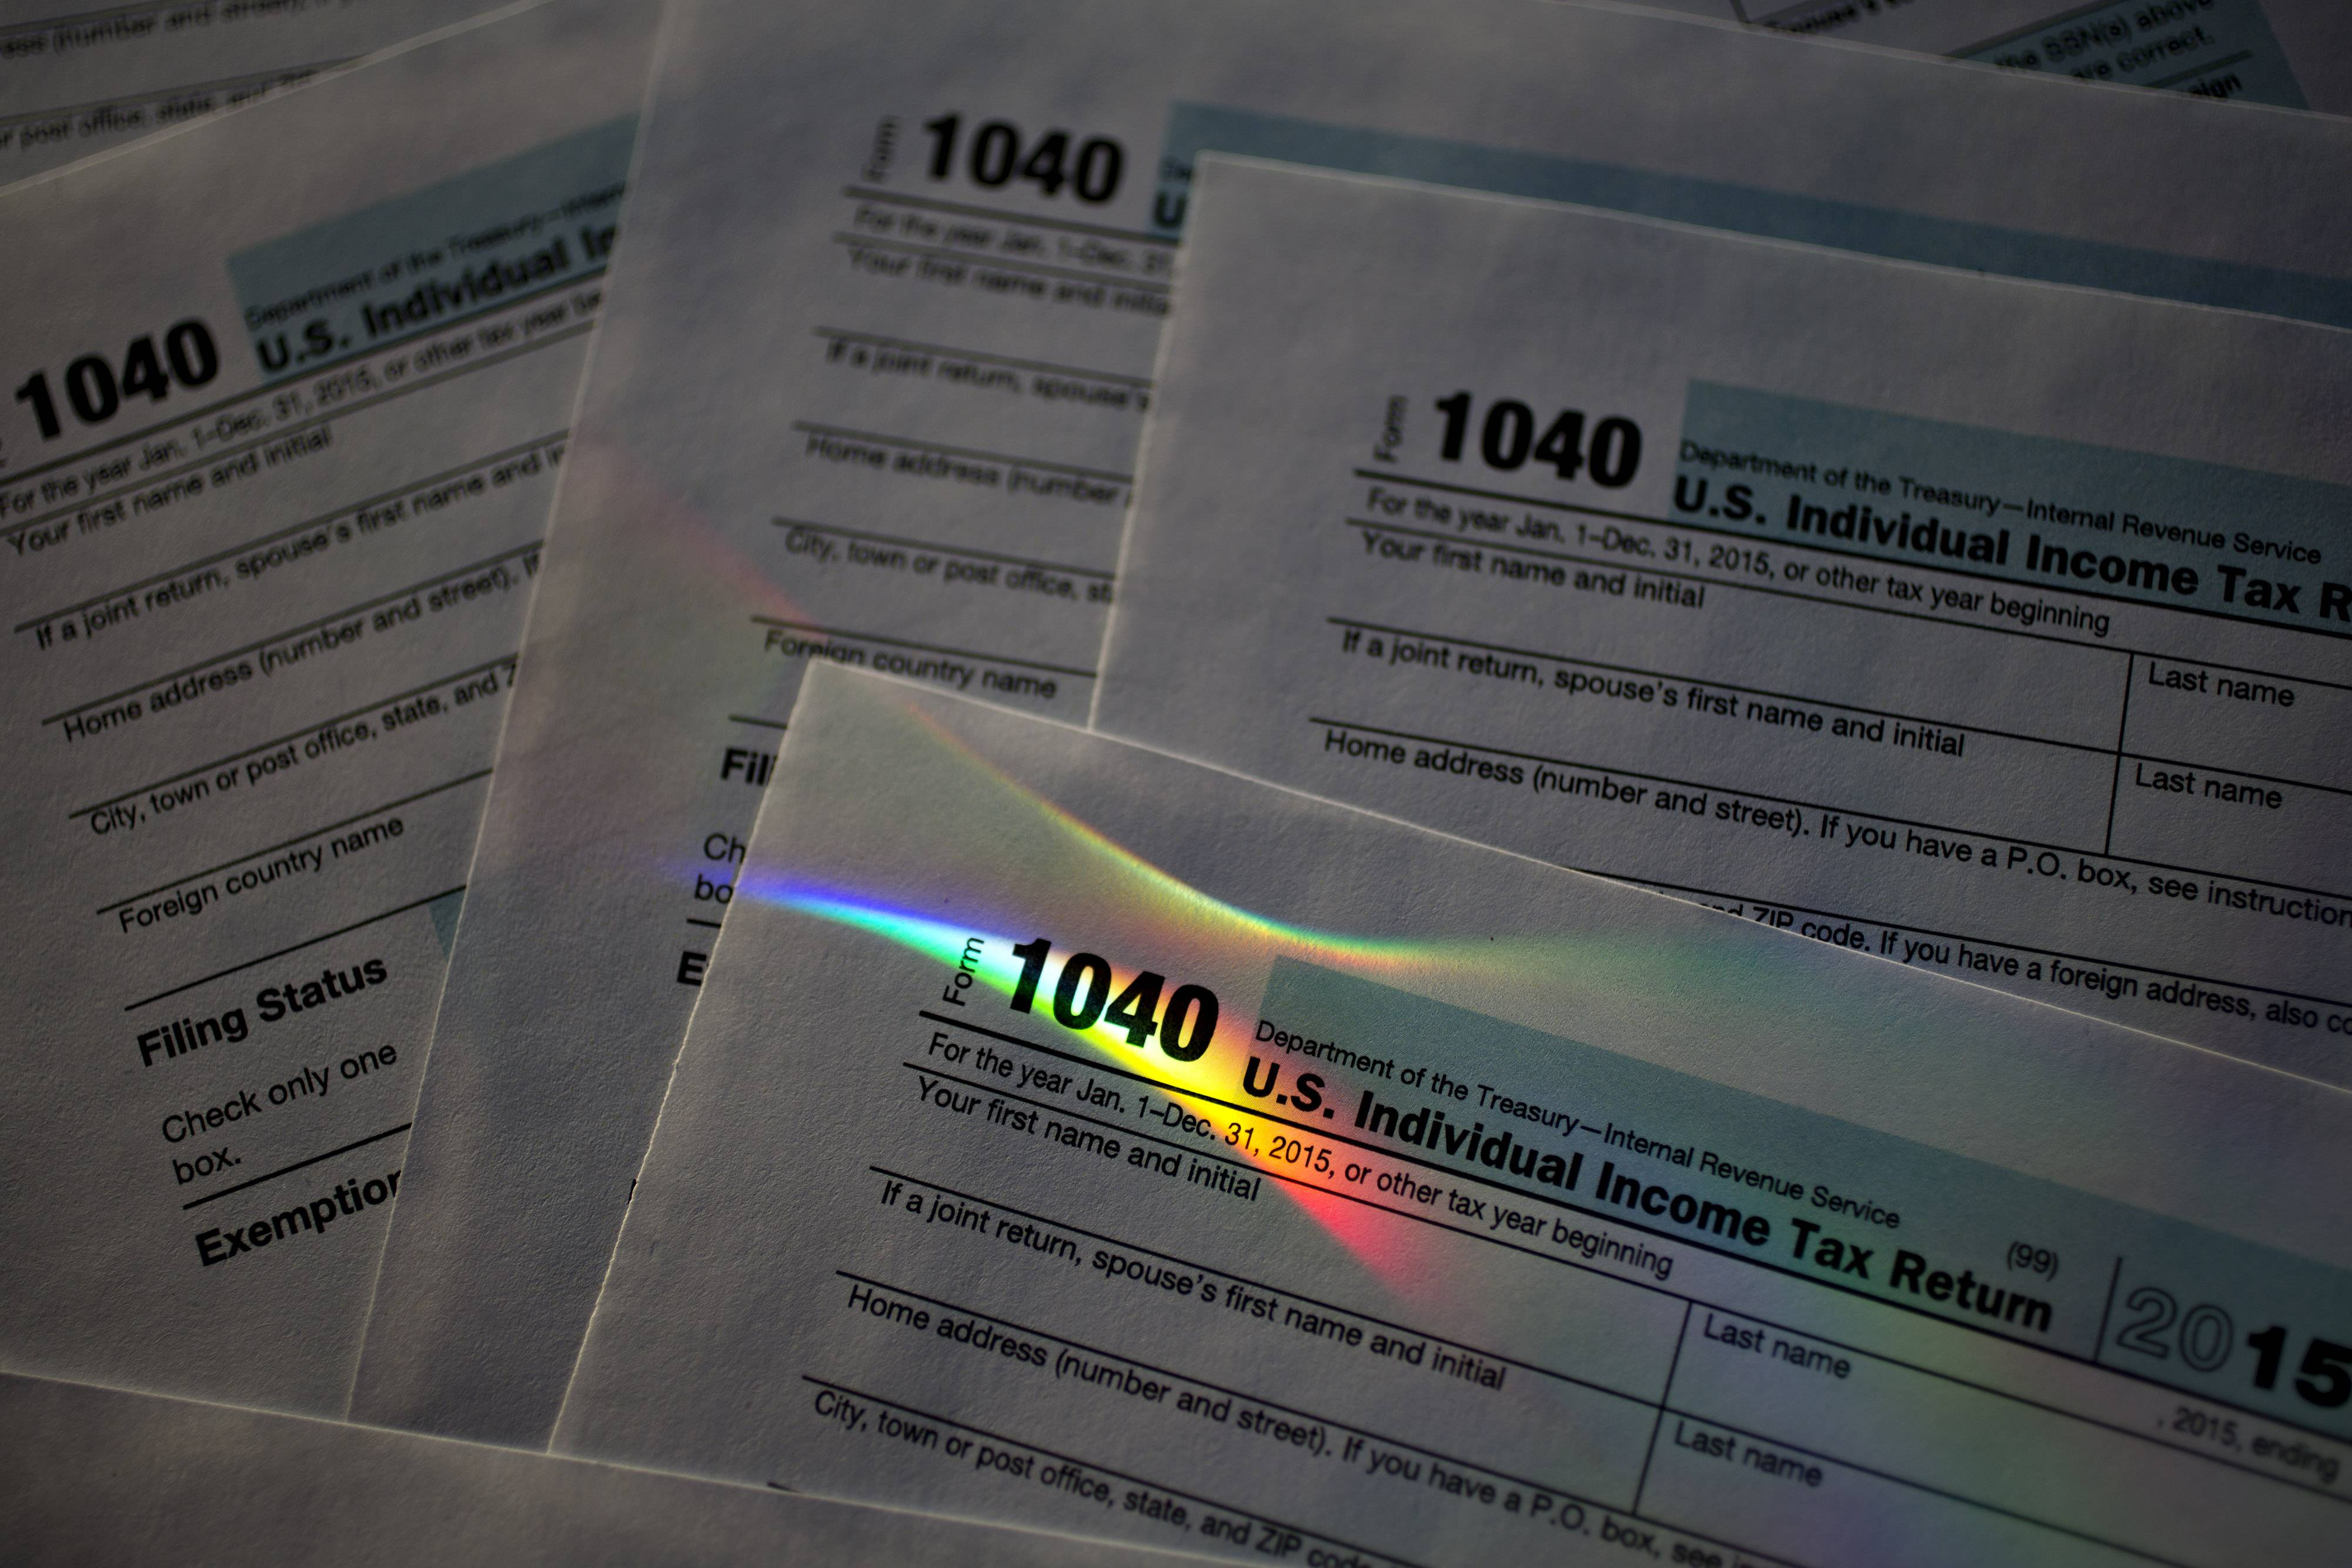 Last year, the National Consumer Law Center tested 29 tax prep offices and found only two forms completed correctly. Just two of 19 preparers randomly selected by the U.S. Government Accountability Office calculated the correct refund amount in 2014.